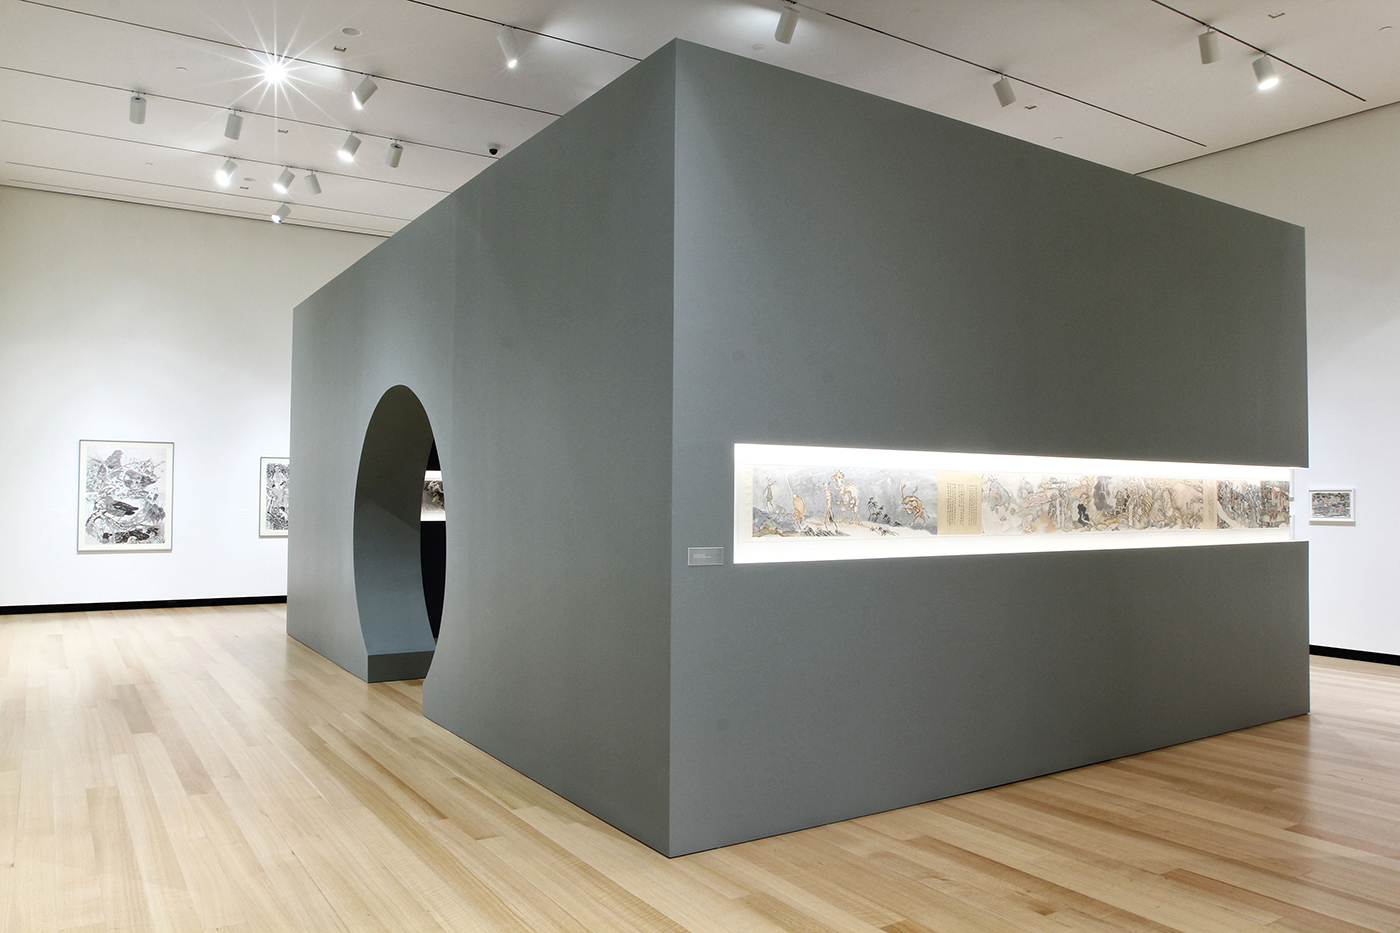 Installation view, 'Yun-Fei Ji: The Intimate Universe' at the Ruth and Elmer Wellin Museum of Art (photo by John Bentham, courtesy the Ruth and Elmer Wellin Museum of Art at Hamilton College) (click to enlarge)